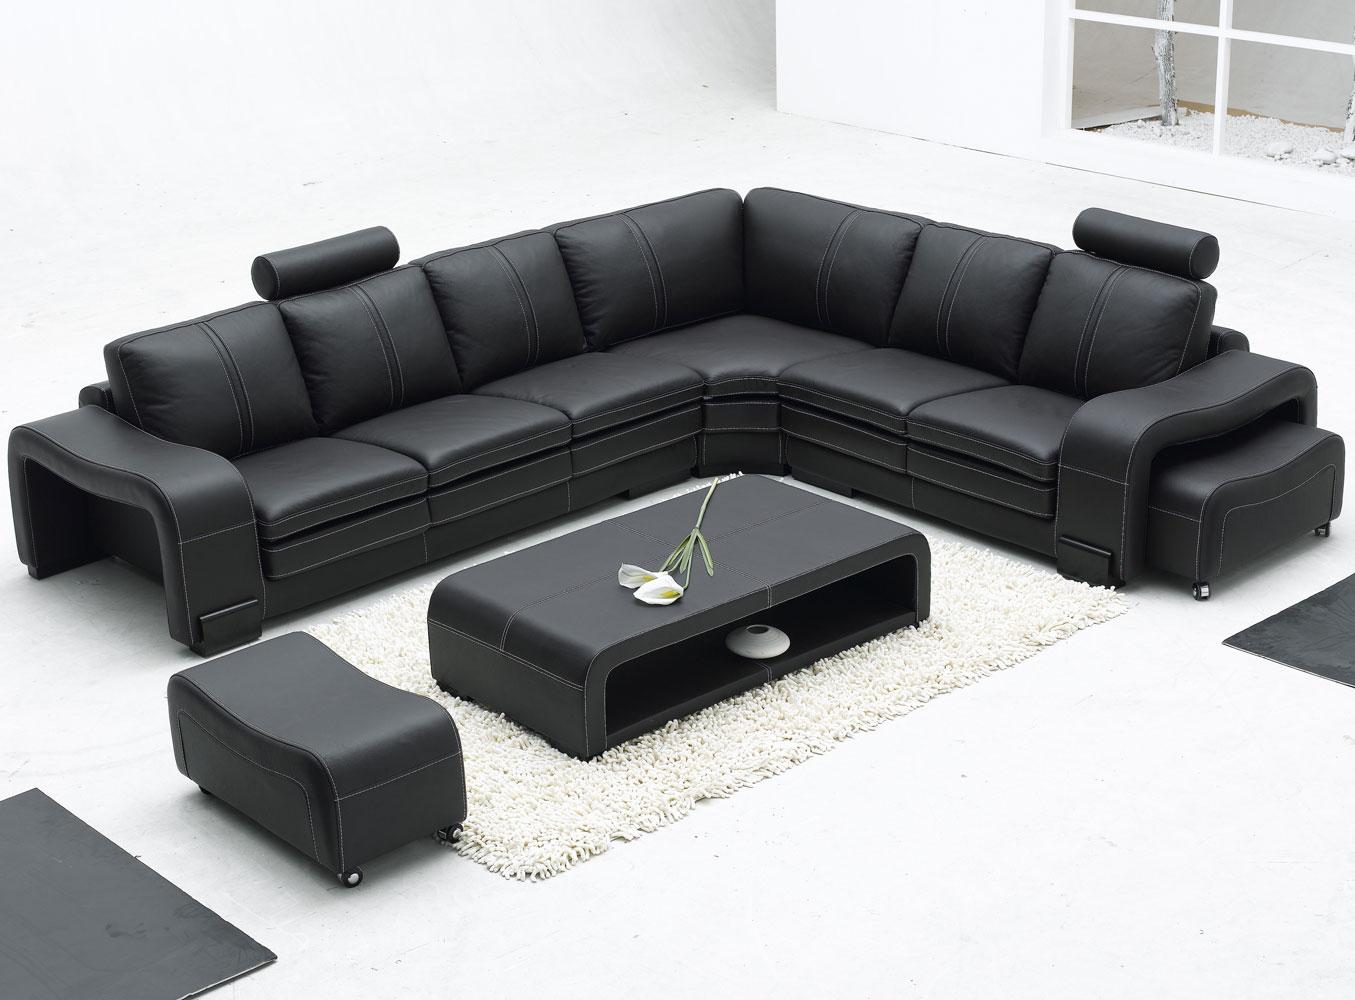 New Sectional Leather Sofa 56 For Your Sofa Room Ideas with Sectional Leather Sofa